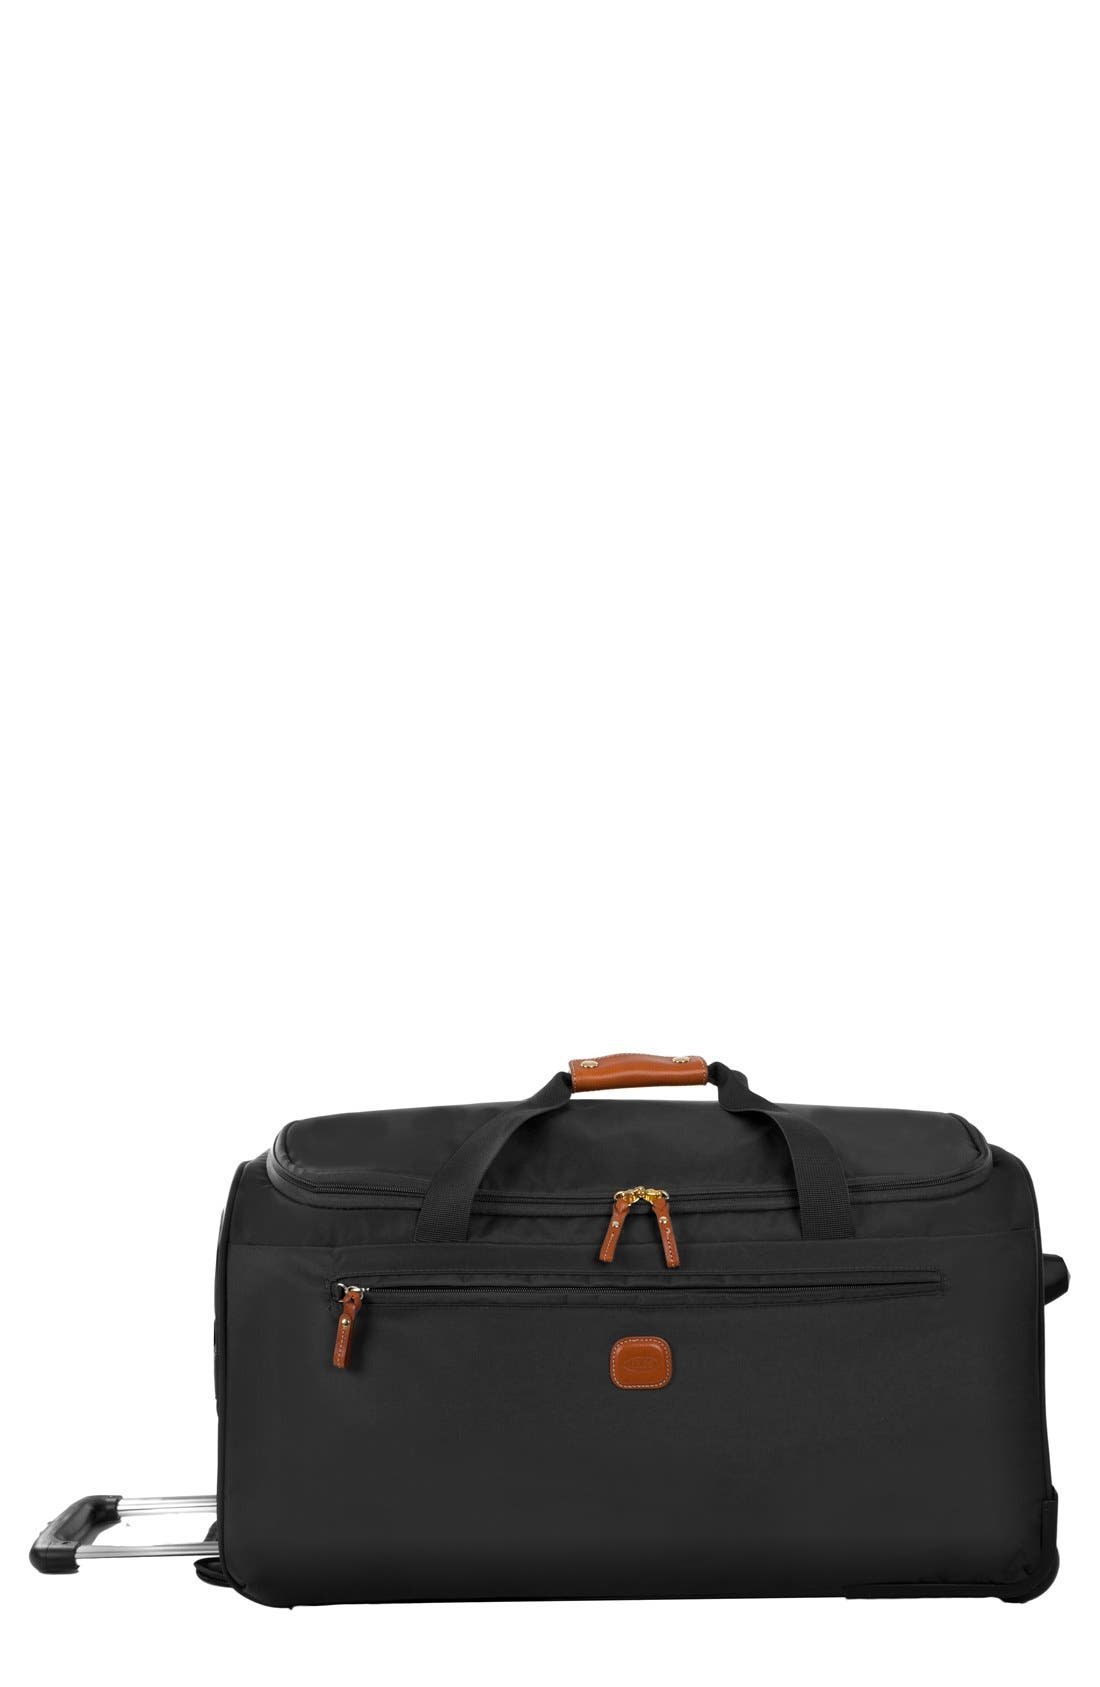 X-Bag 28-Inch Rolling Duffel Bag - Black